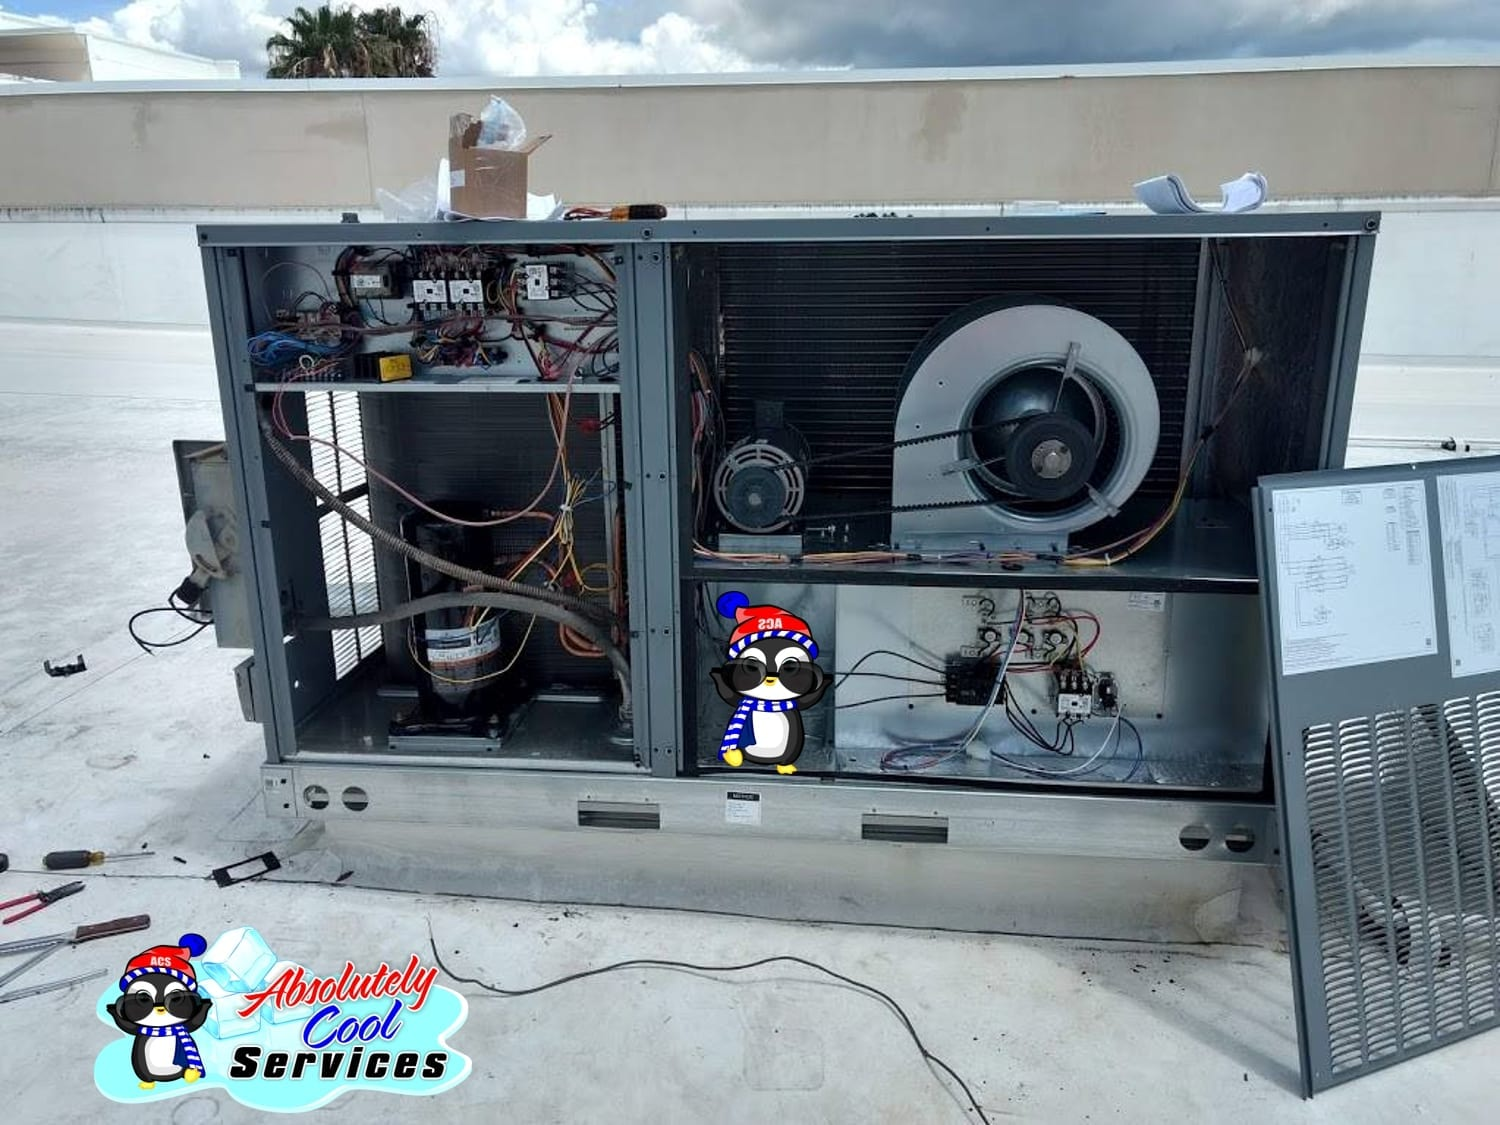 Roof Air Conditioning | HVAC Duct Work Company near Royal Palm Beach